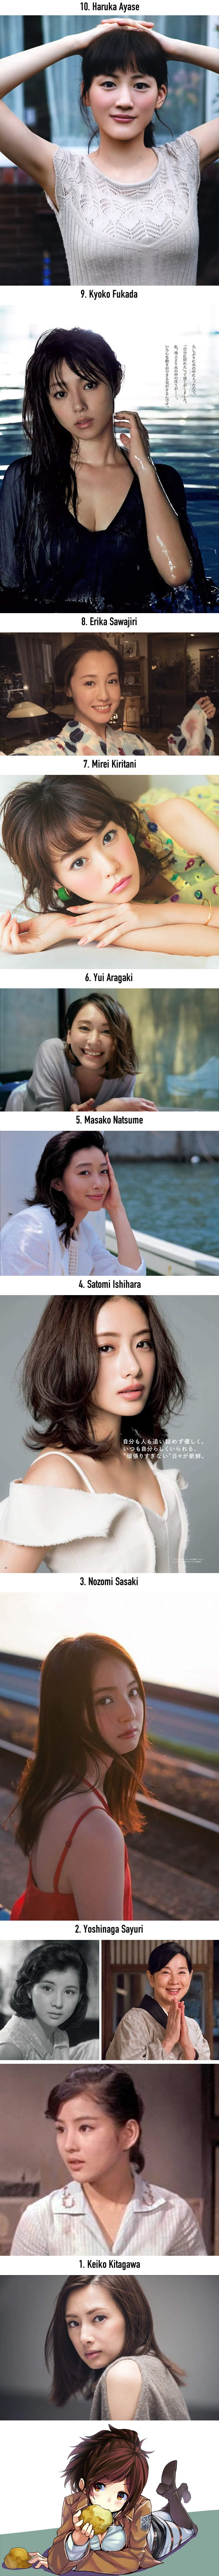 A poll has been done in Japan and revealed the most beautiful Japanese female celebrity